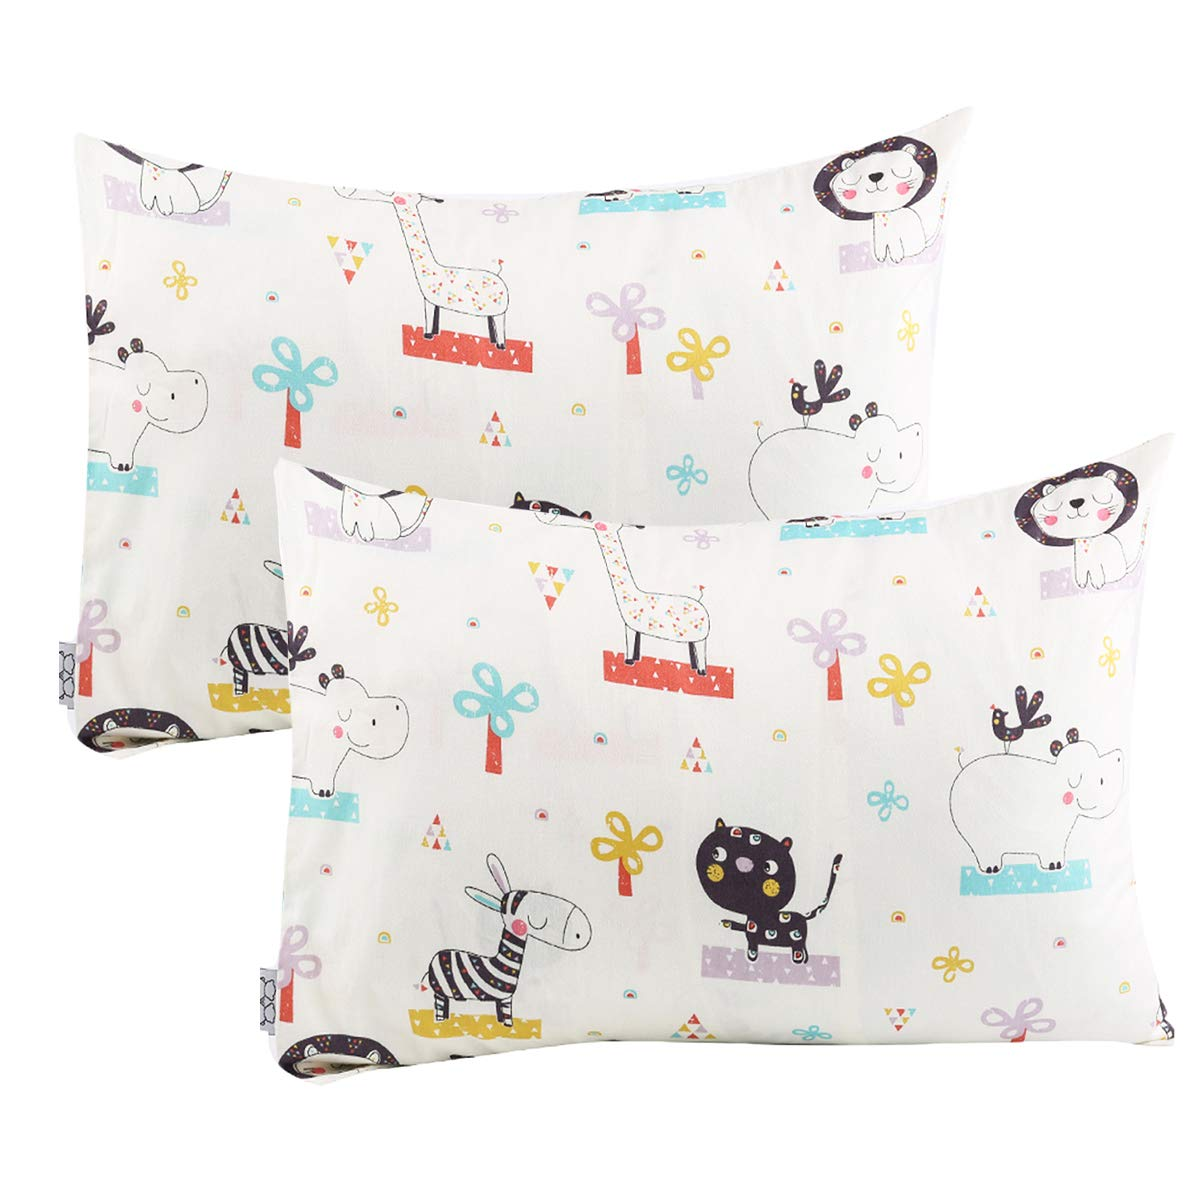 UOMNY Kids Toddler Pillowcases 2 Pack 100% Cotton Pillowslip Case Fits Pillows sizesd 13 x 18 or 12x 16 for Kids Bedding Pillow Cover Baby Pillow Cases Elephant/Cat